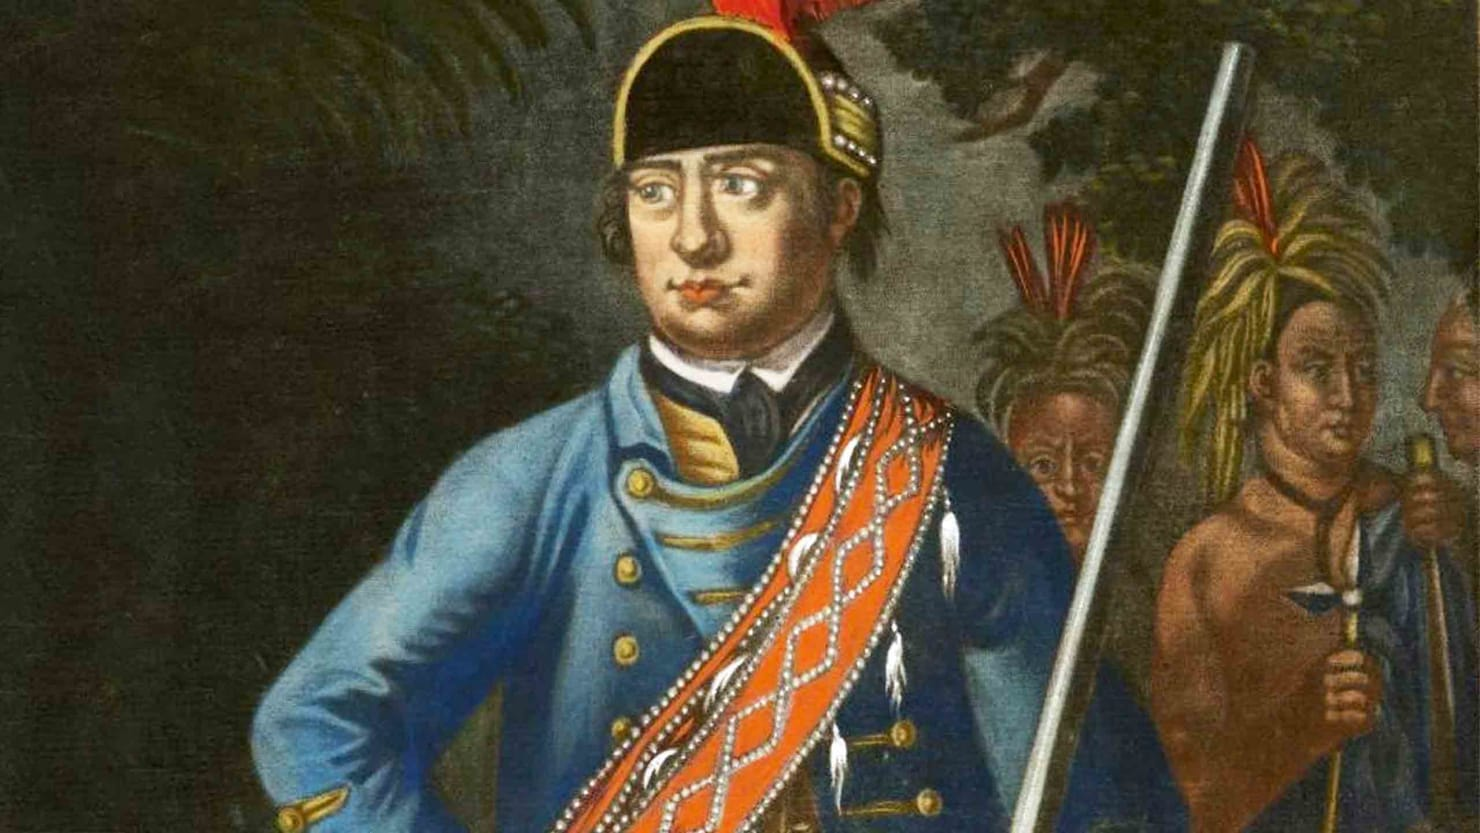 The Anti-Hero Who Created America's Special Forces 250 Years Ago